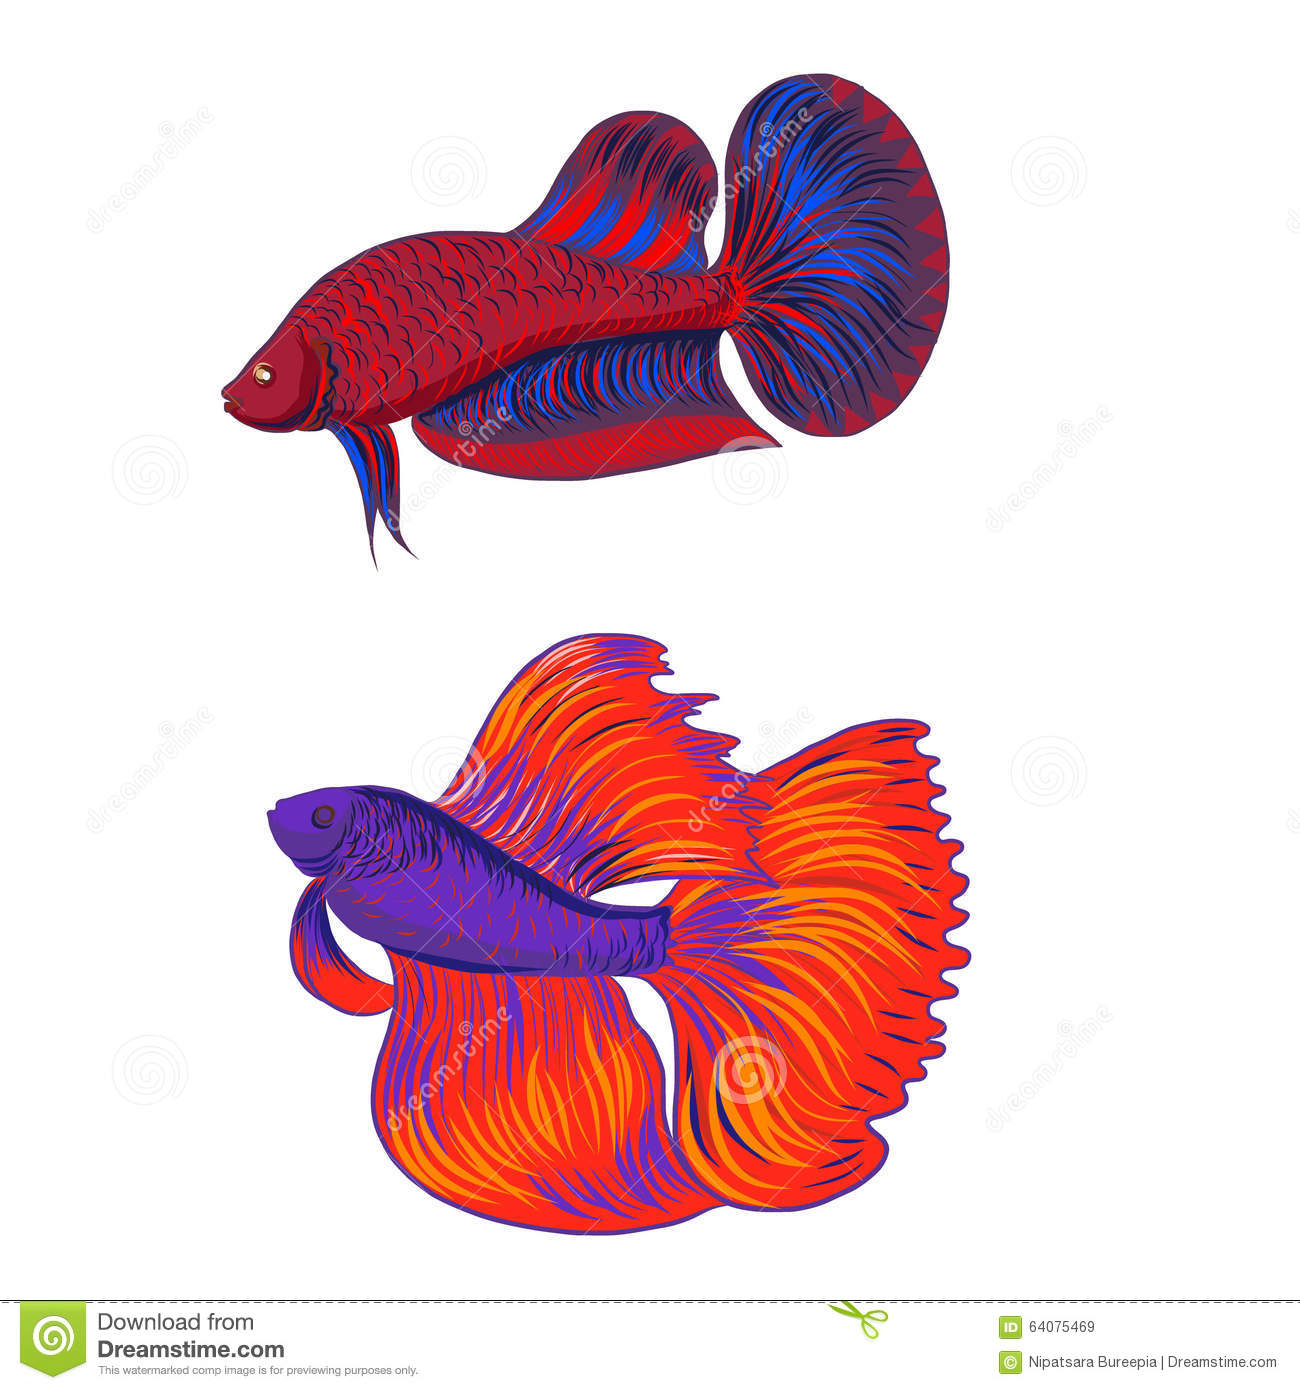 Siamese Fighting Fish clipart #5, Download drawings